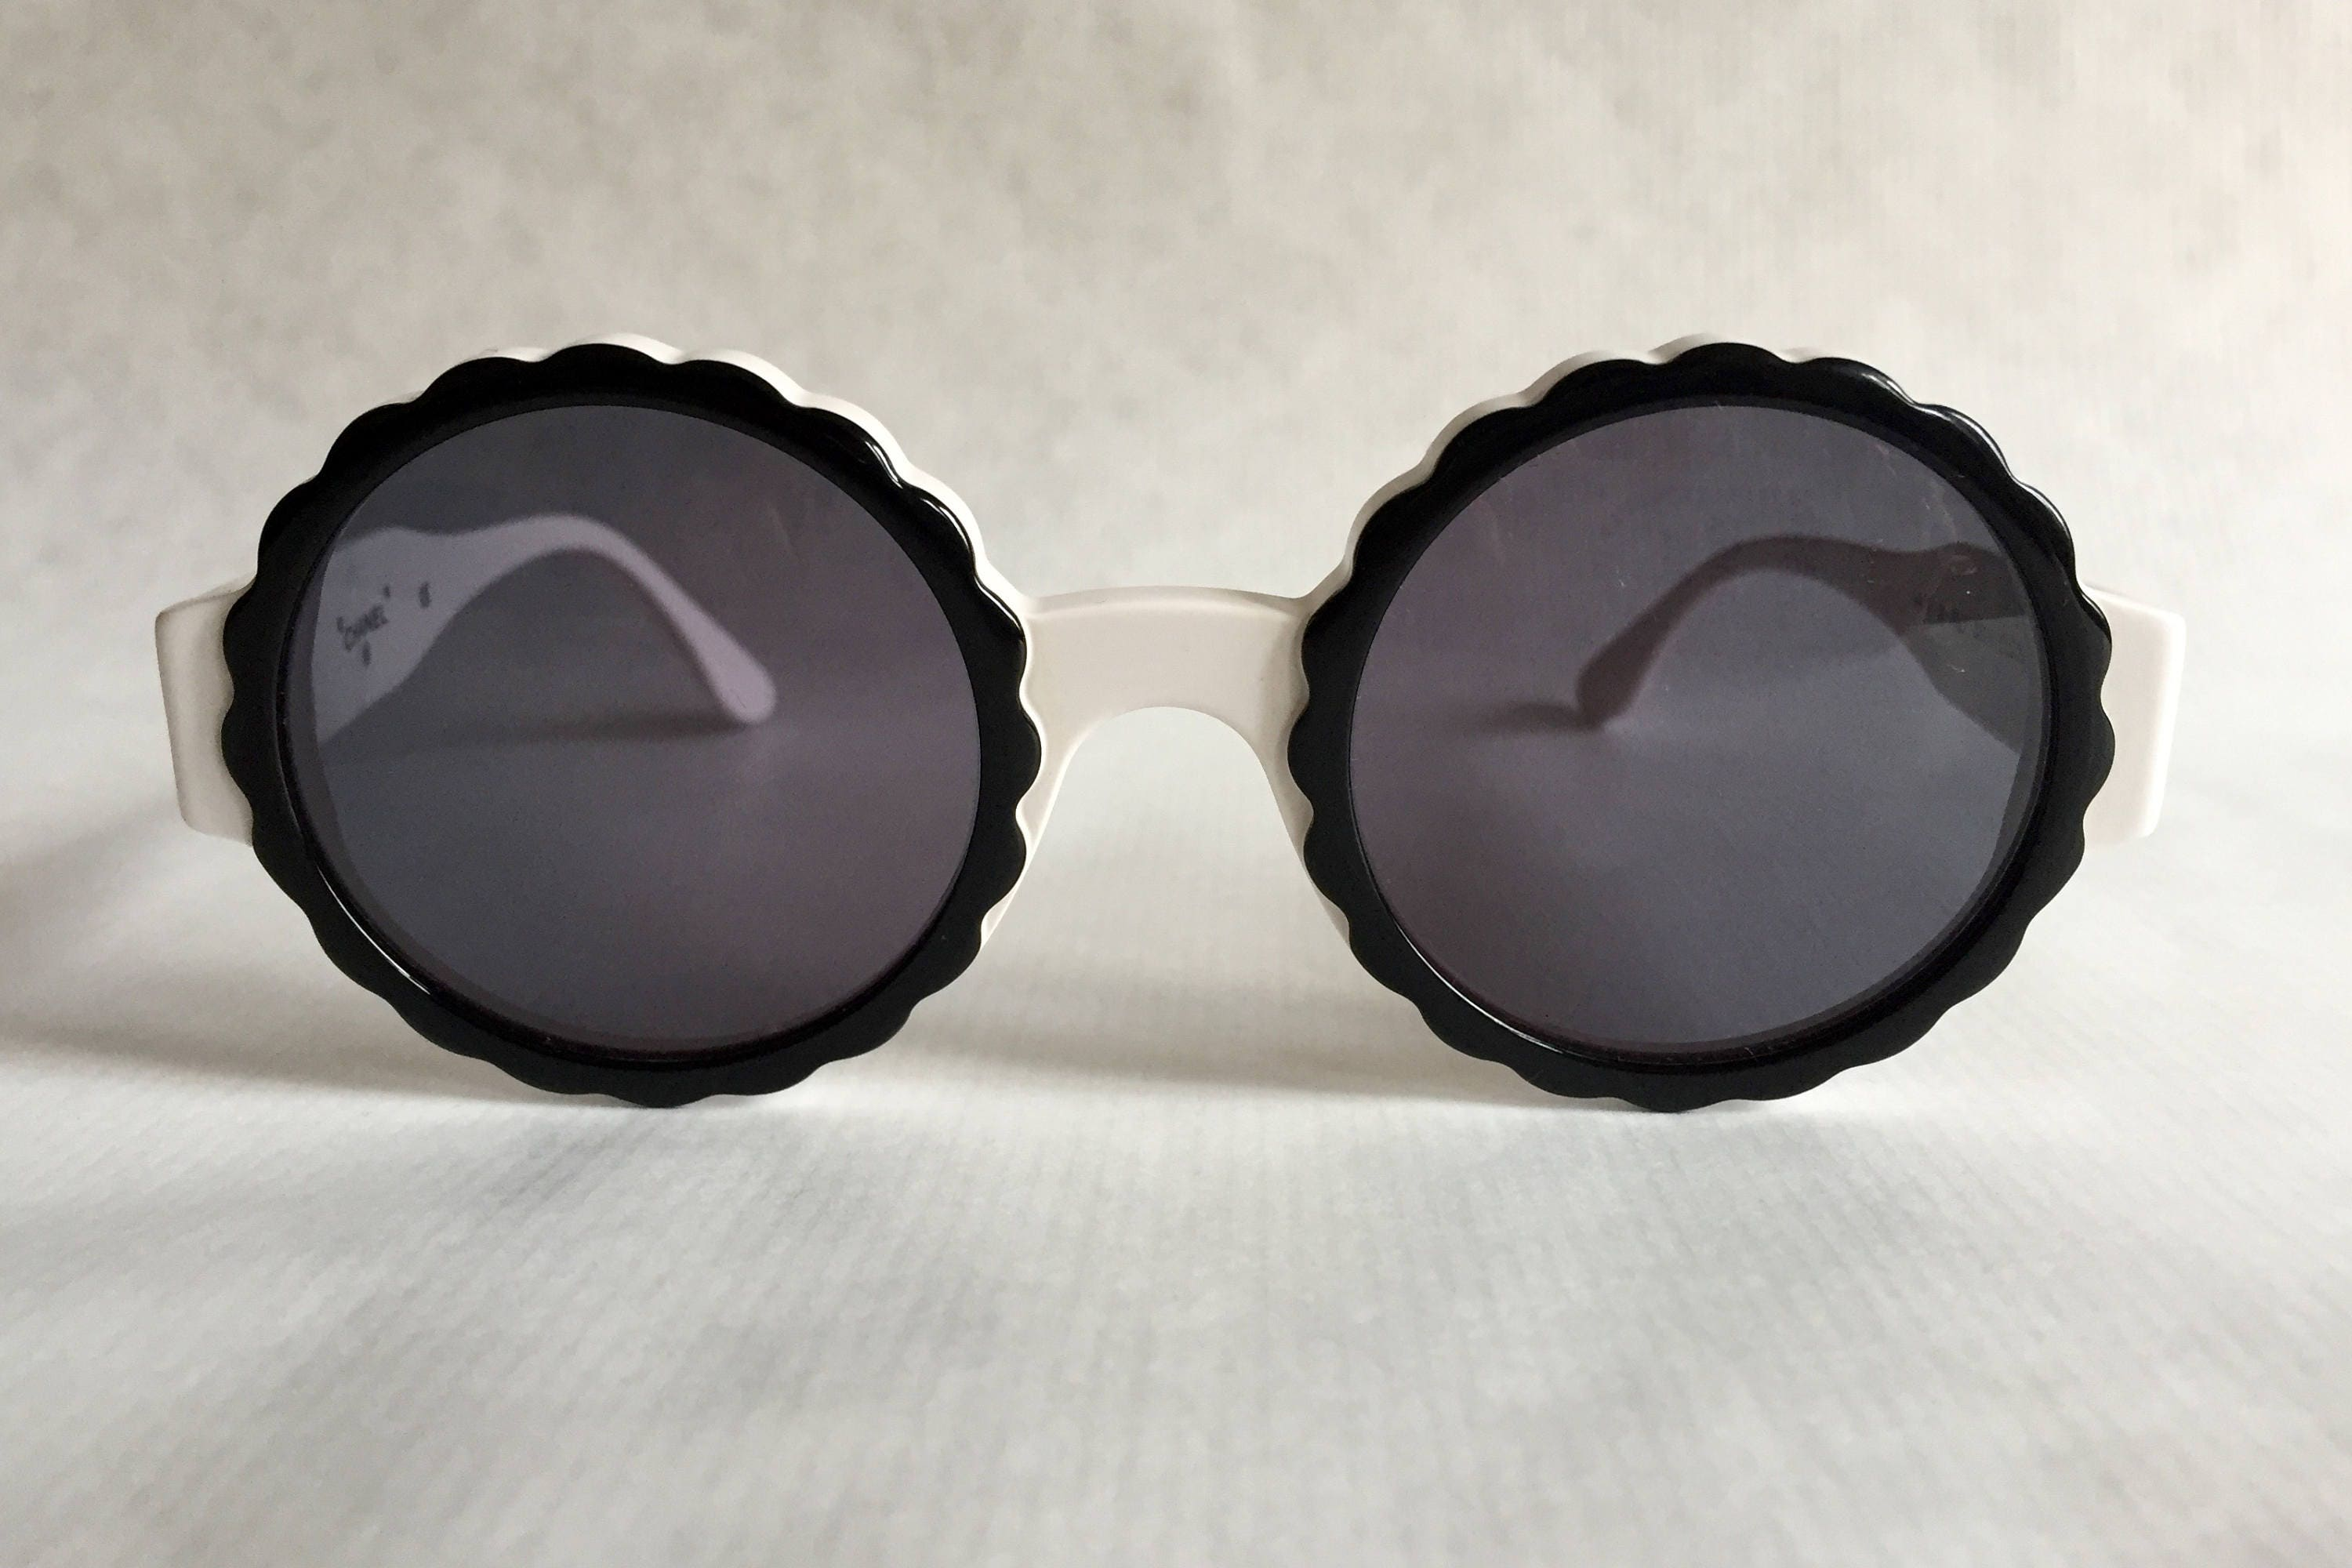 97ec4a2777fbc CHANEL 03524 C0200 Vintage Sunglasses New Old Stock including Box ...